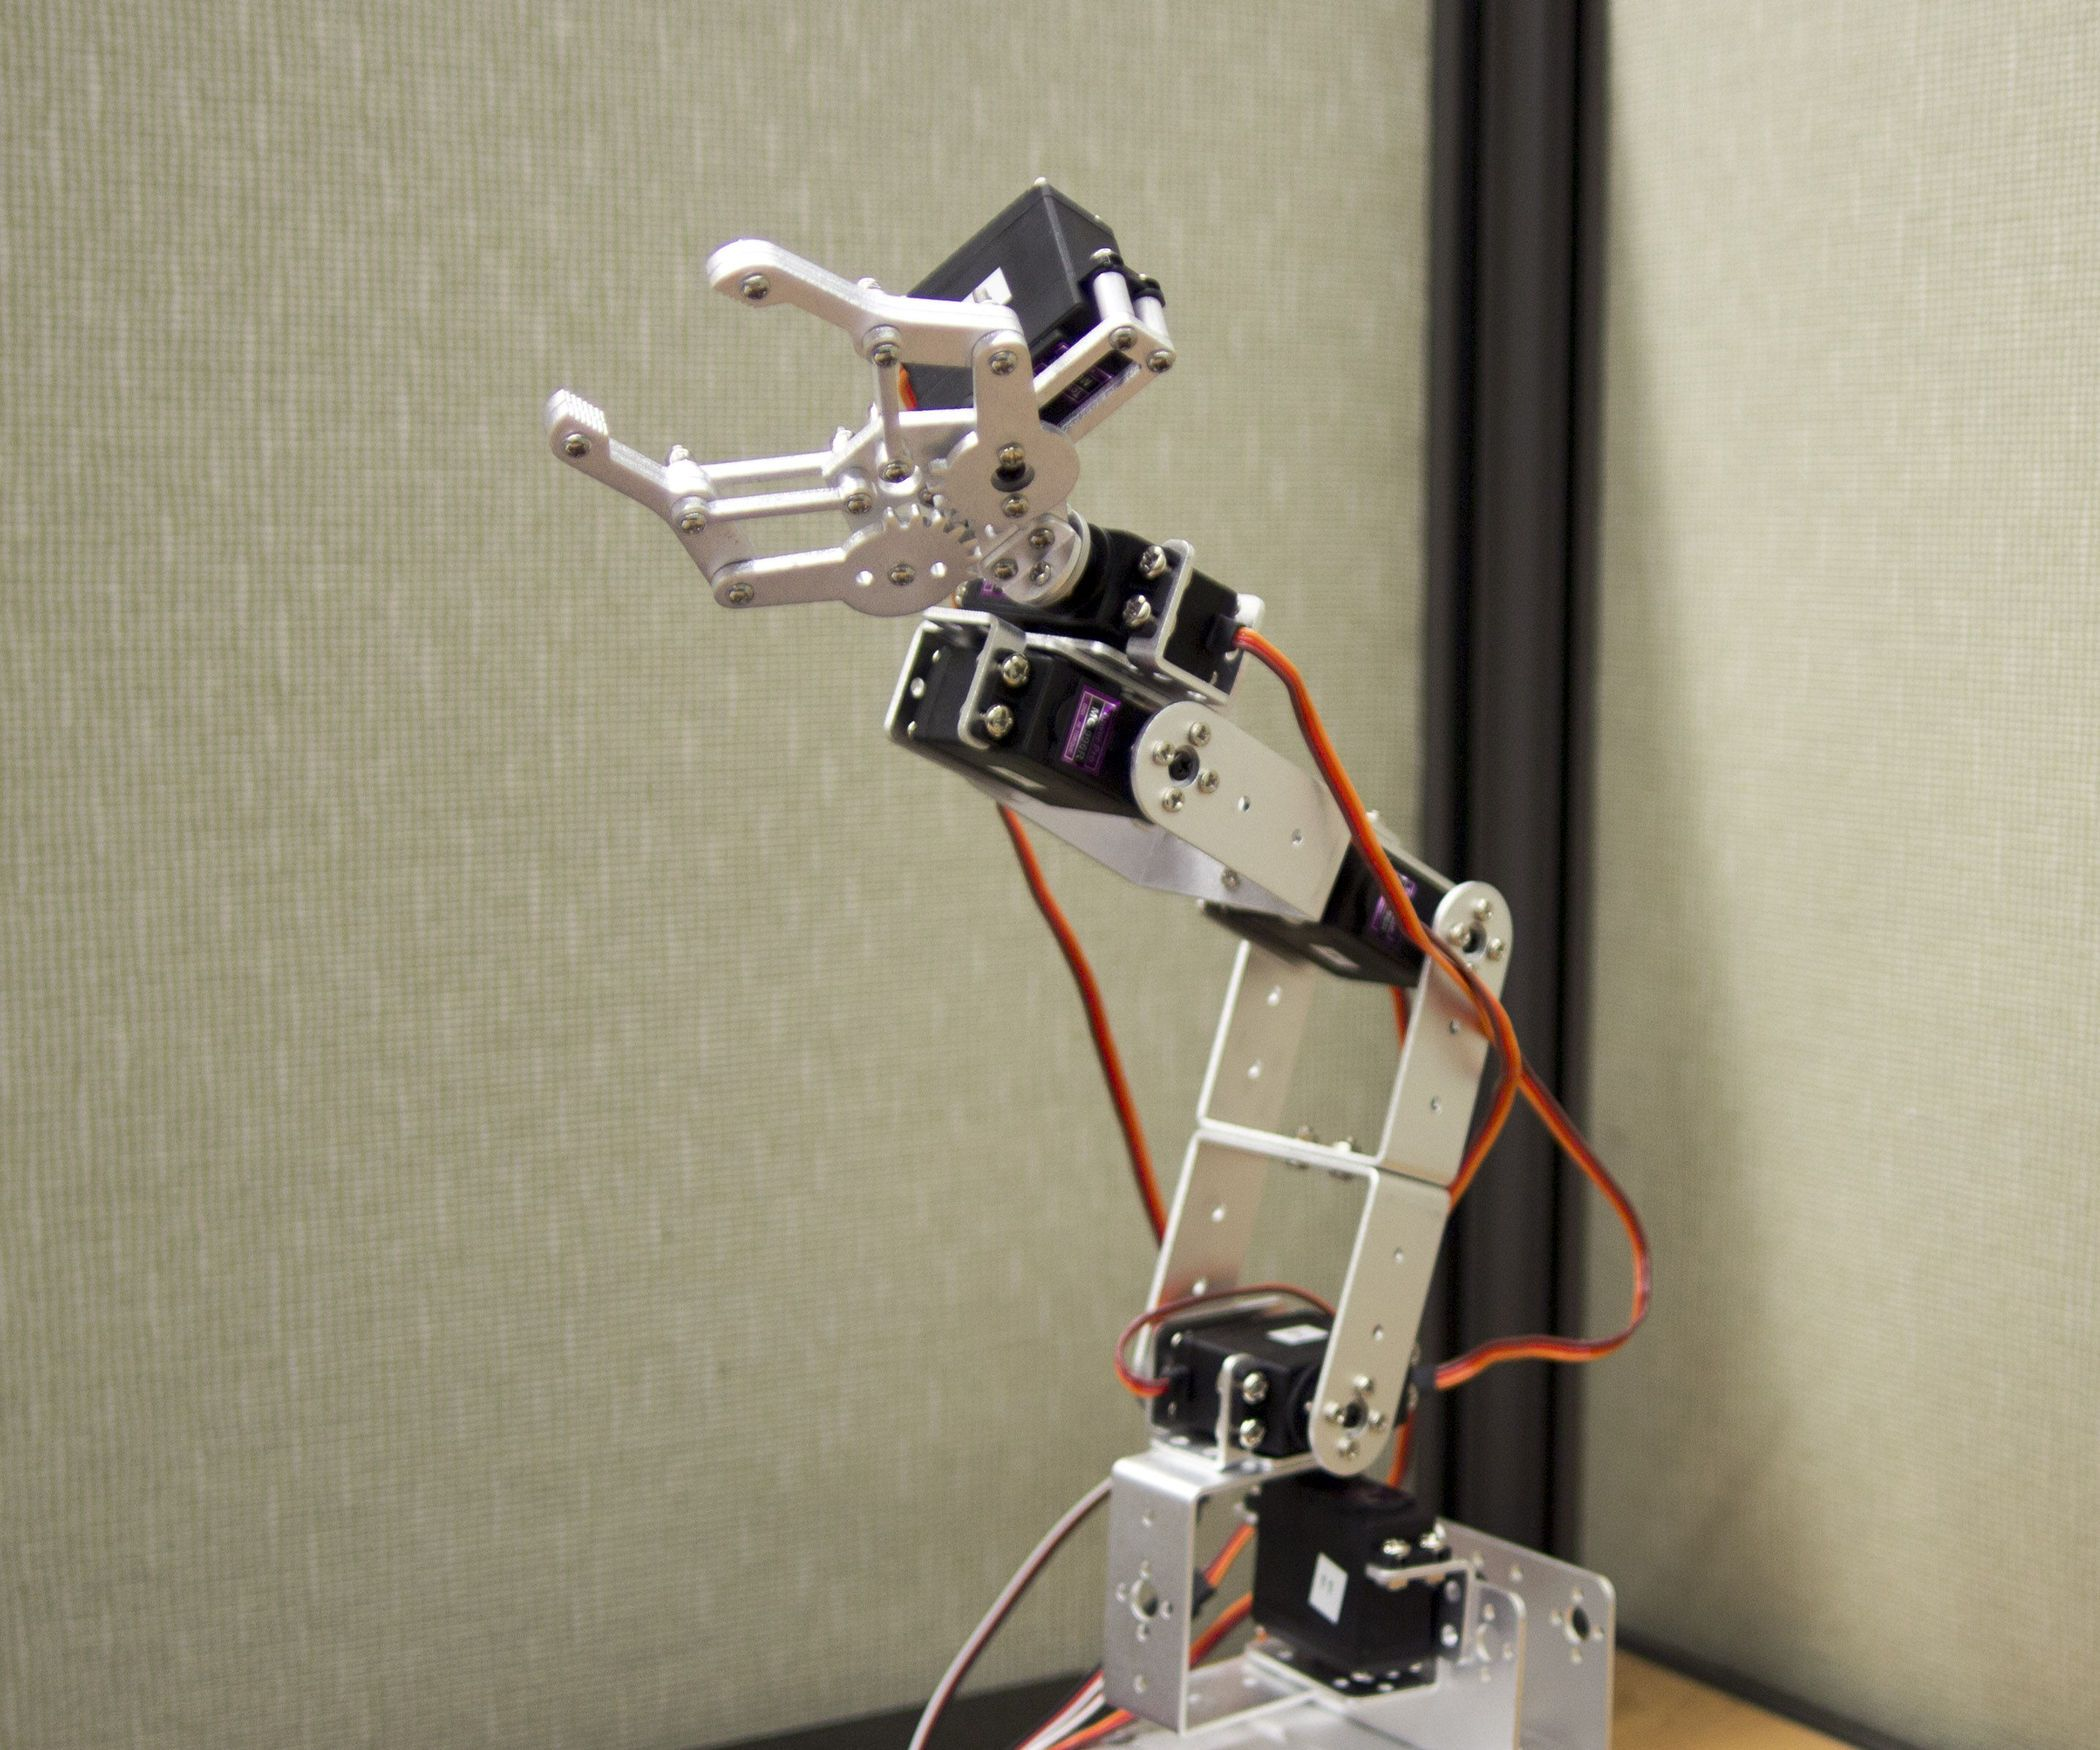 Robot arm arduino app hand and